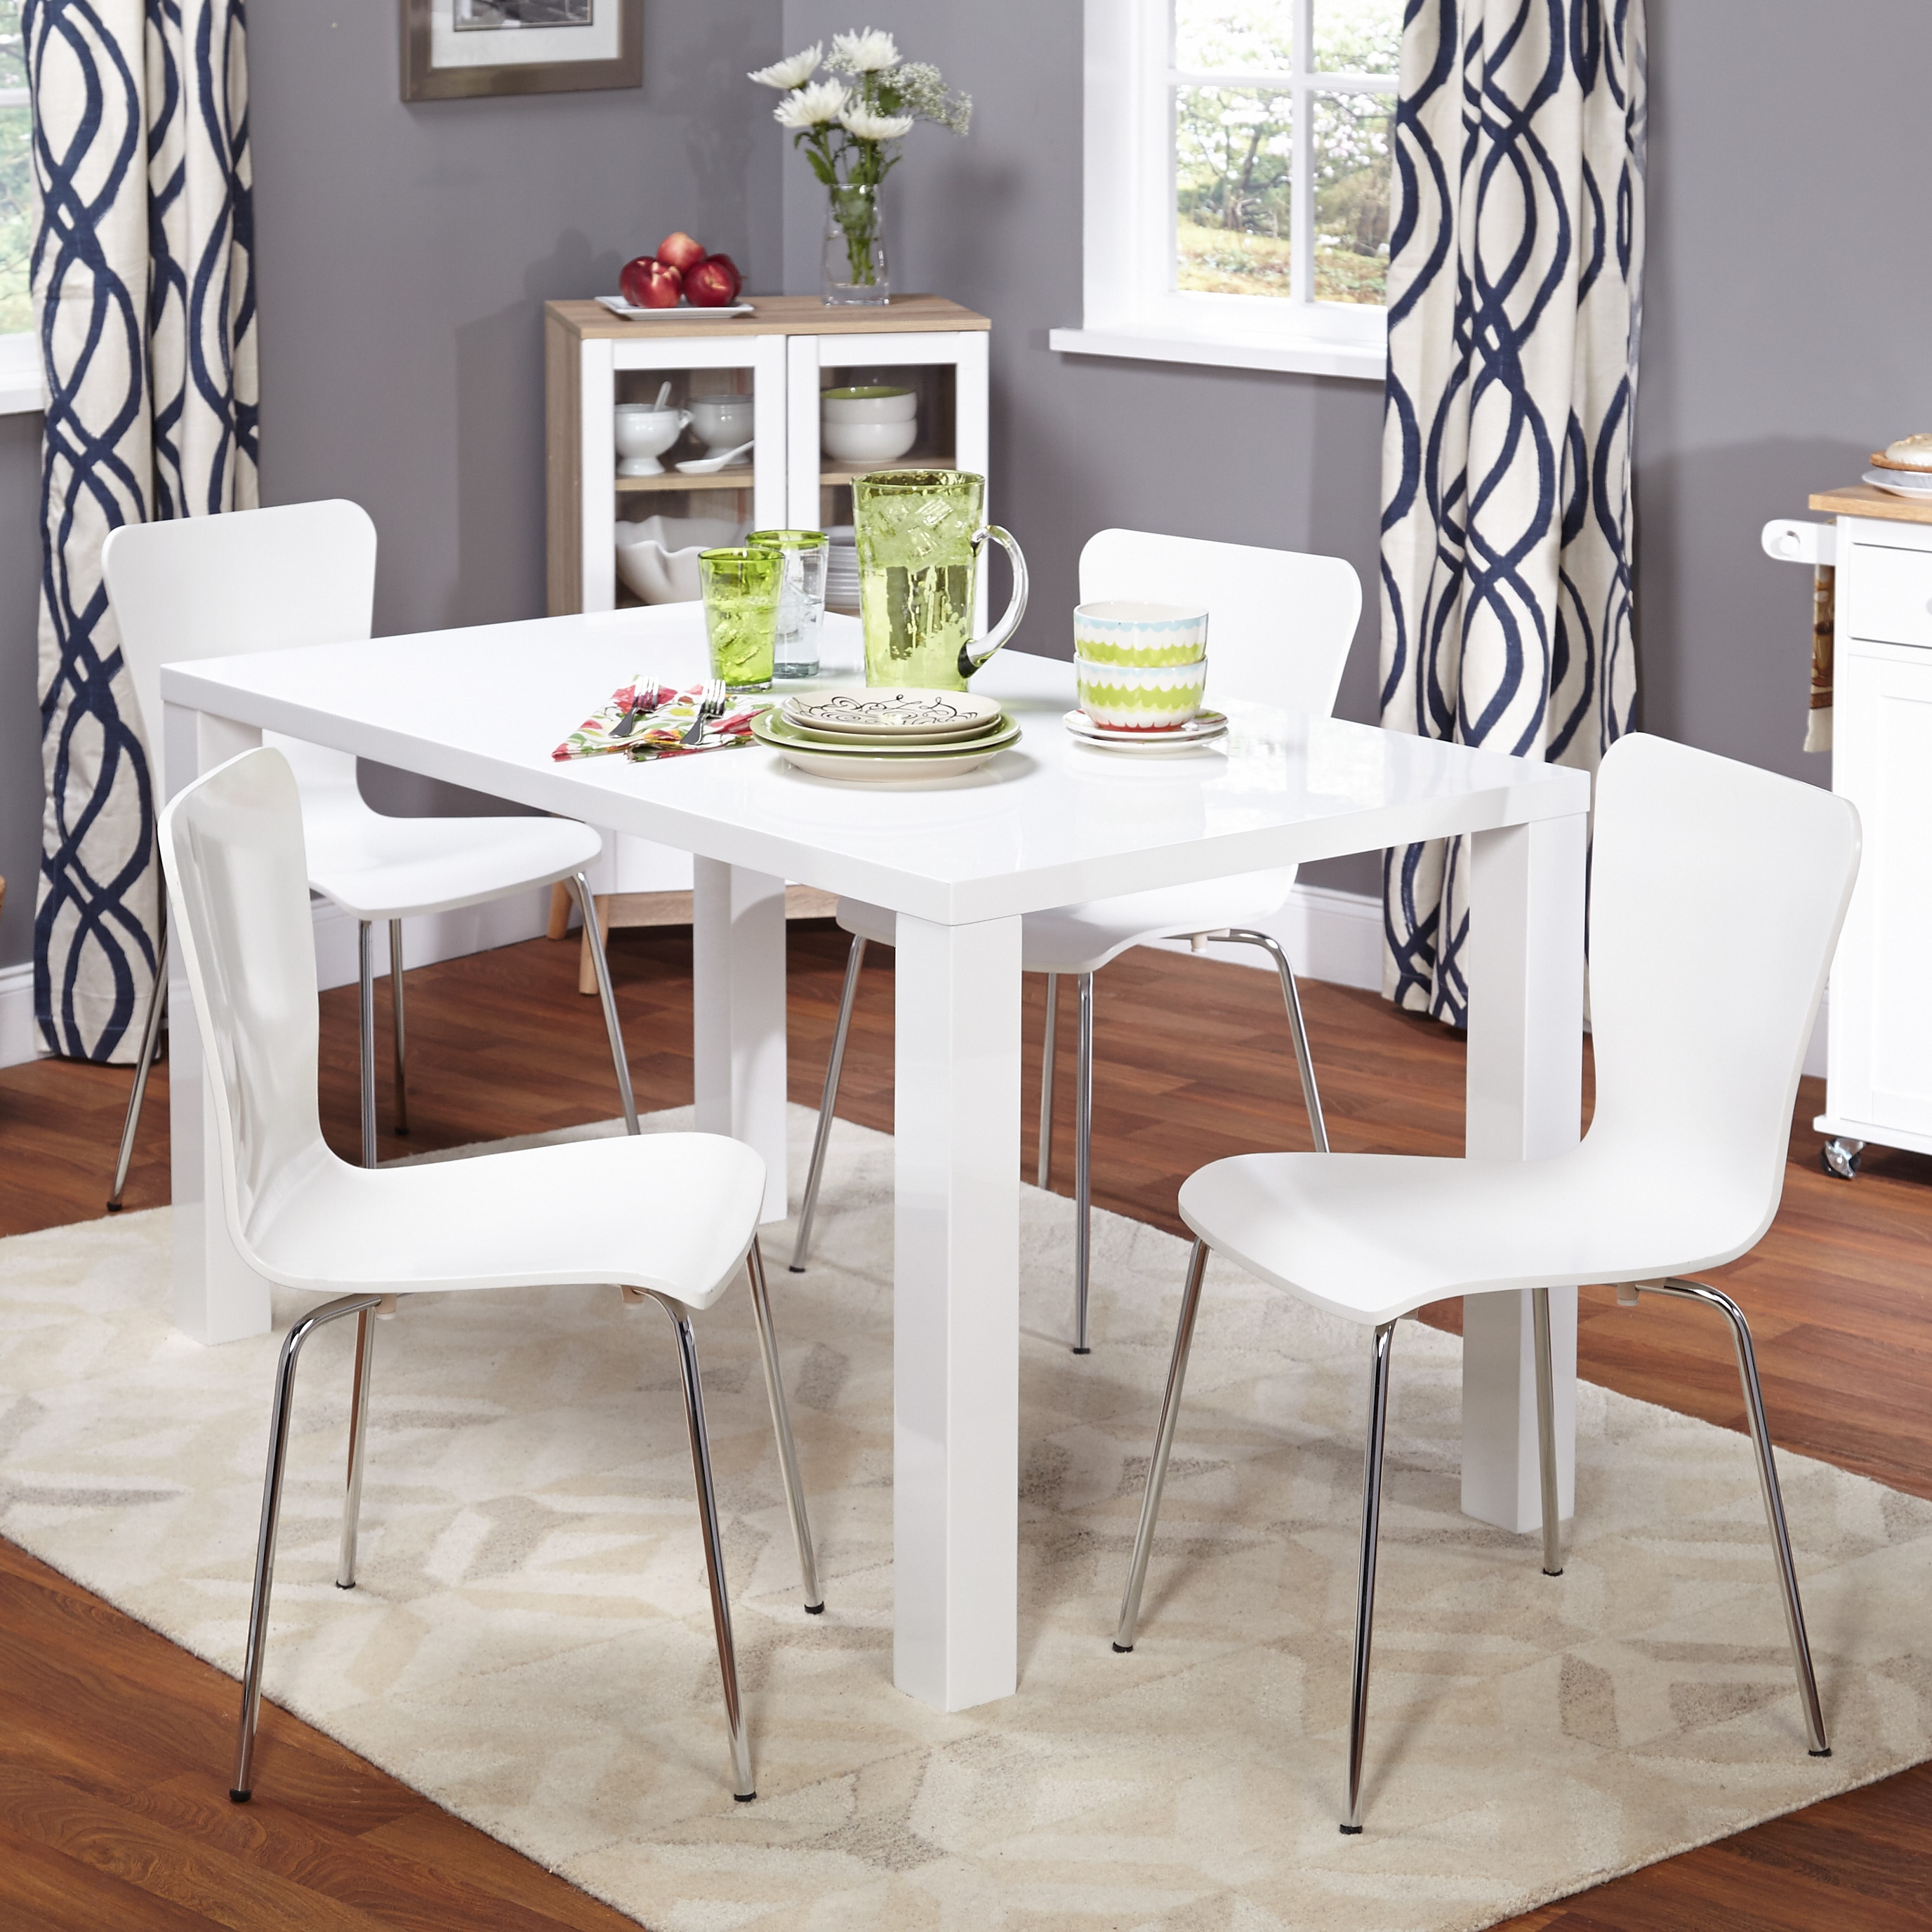 Simple Living 5 Piece Felix Dining Set Free Shipping Today 16714302